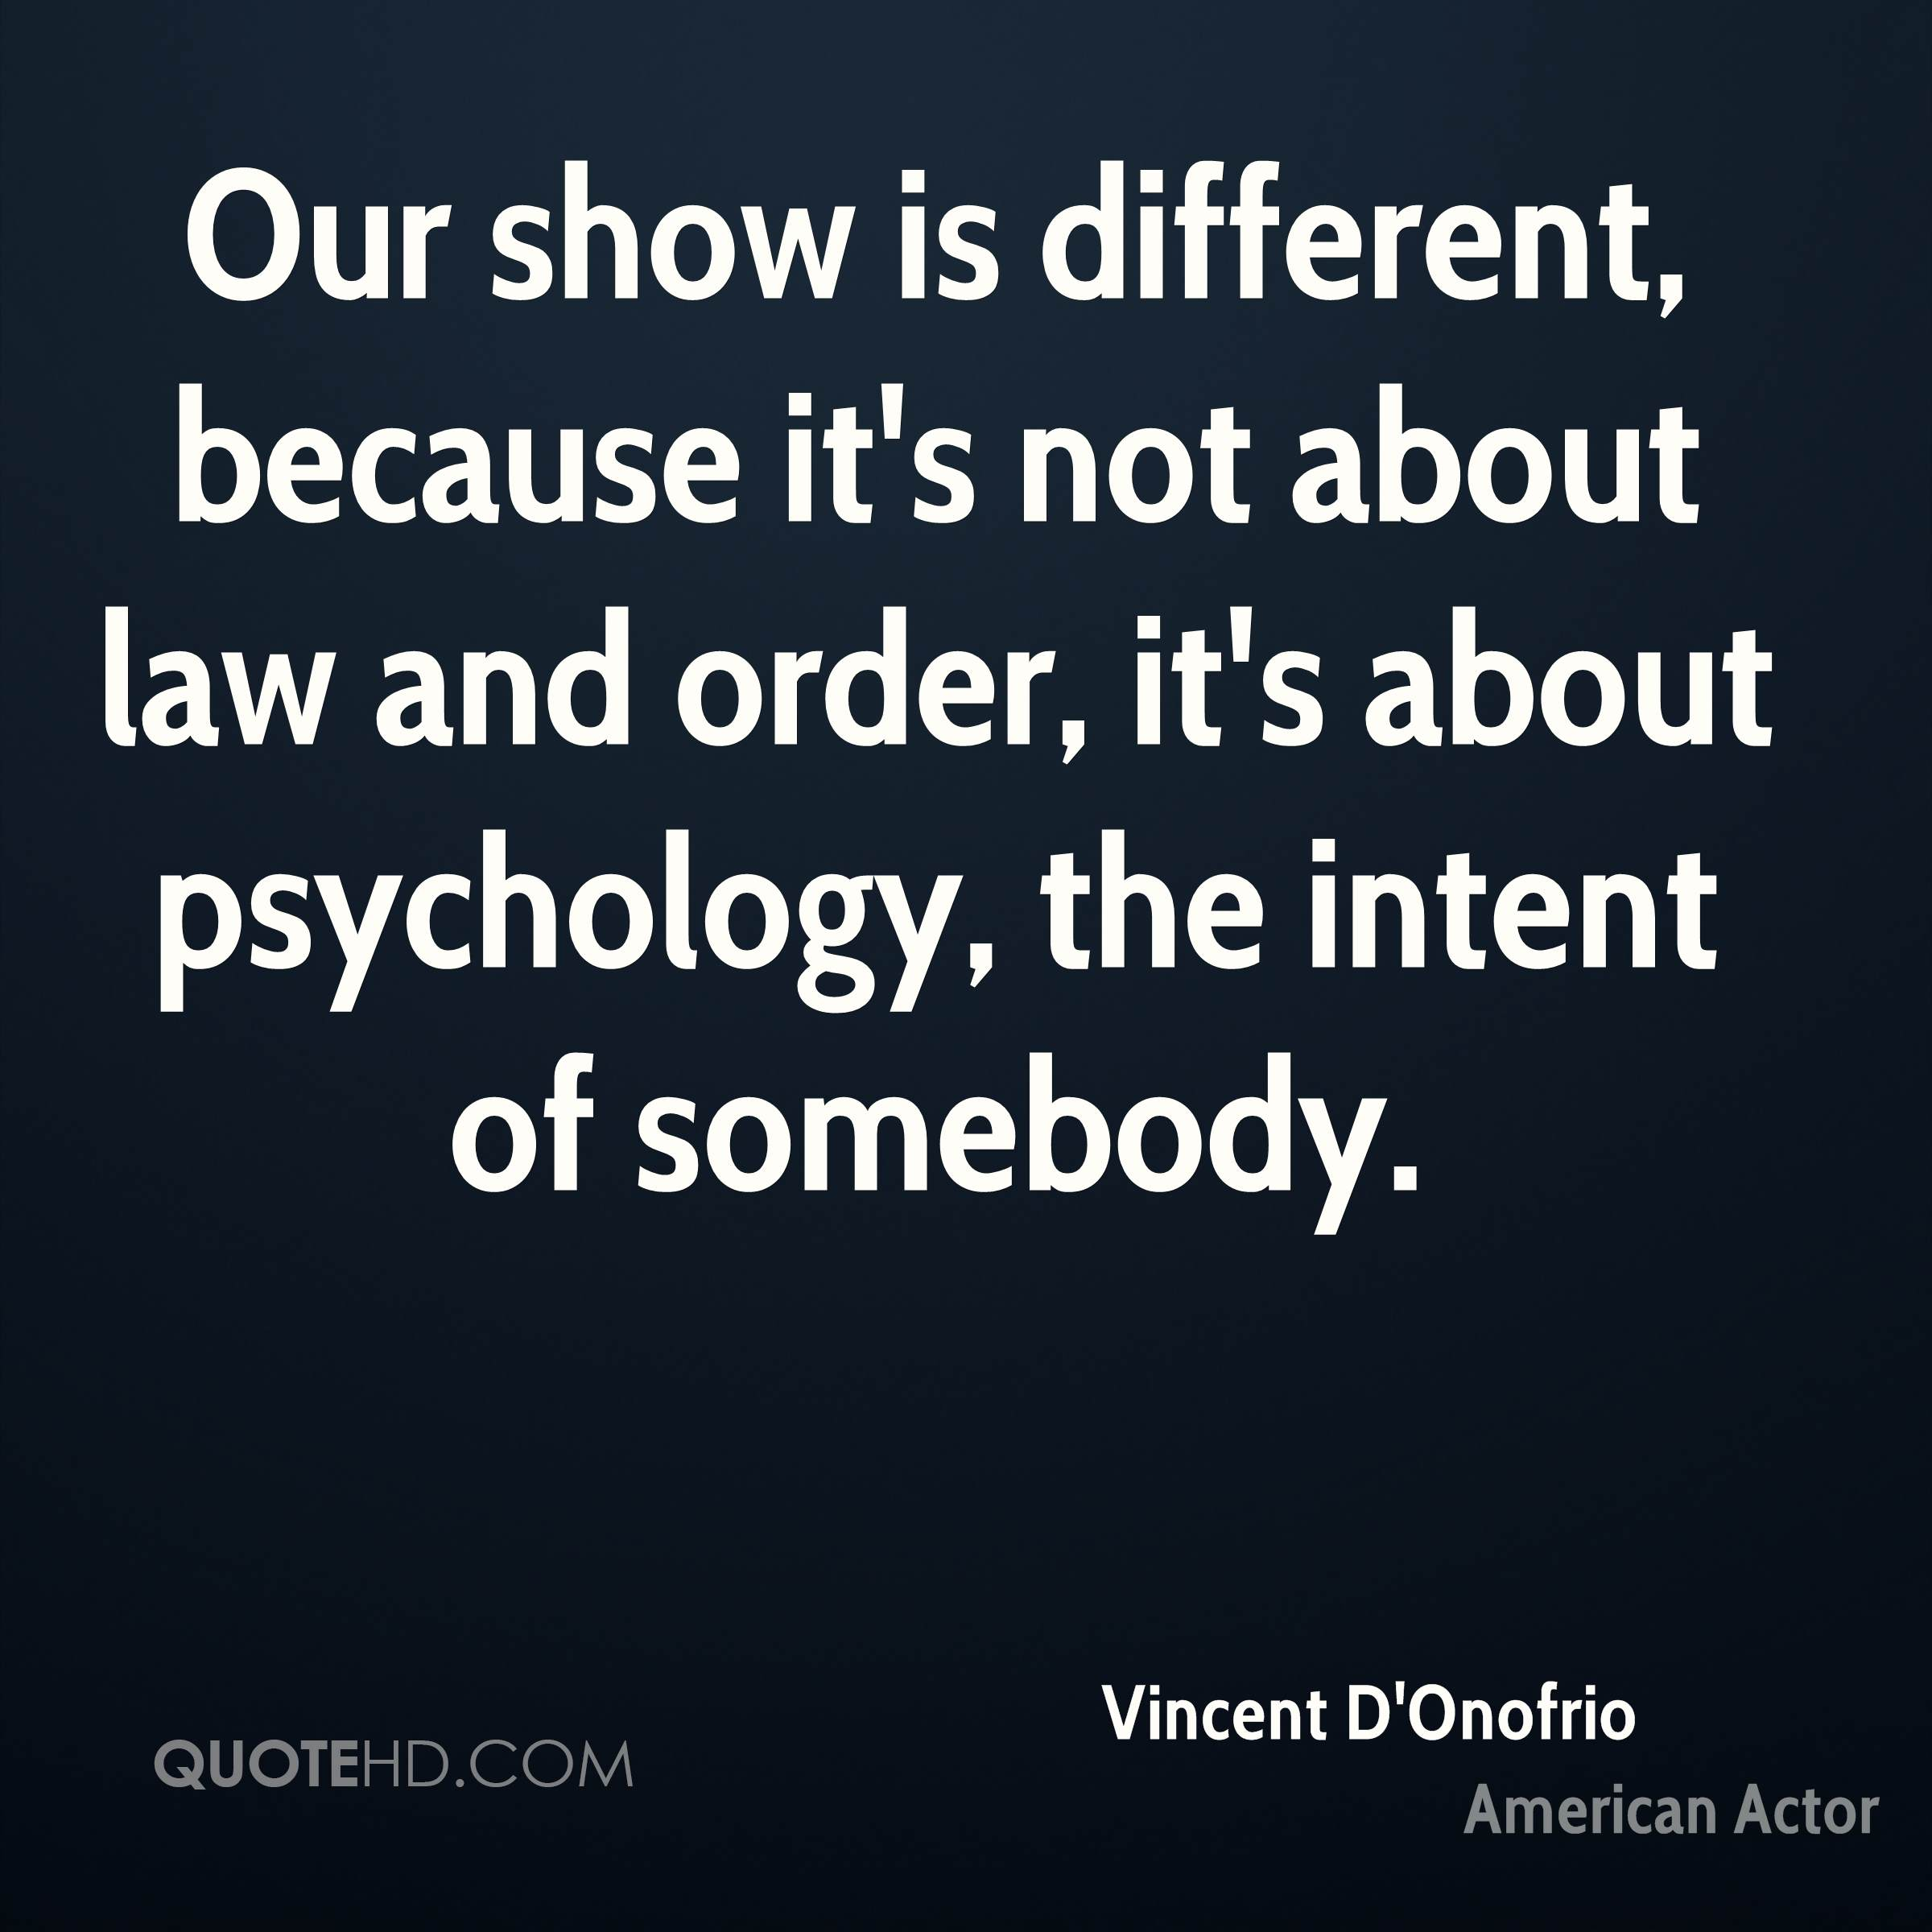 Our show is different, because it's not about law and order, it's about psychology, the intent of somebody.